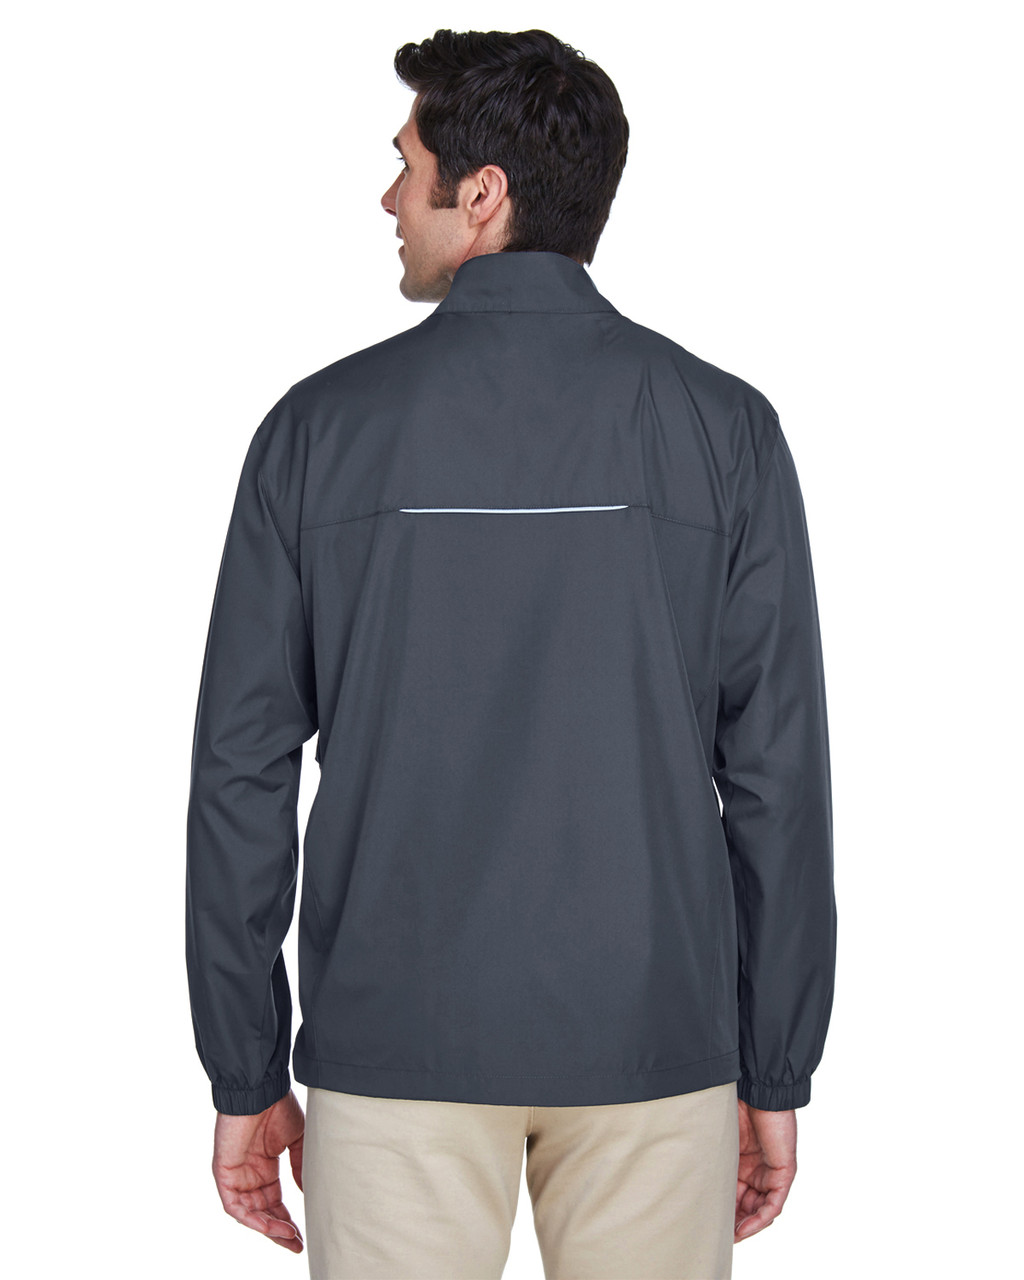 Carbon - Back, 88183 Ash City - Core 365 Motivate Unlined Lightweight Jacket | Blankclothing.ca